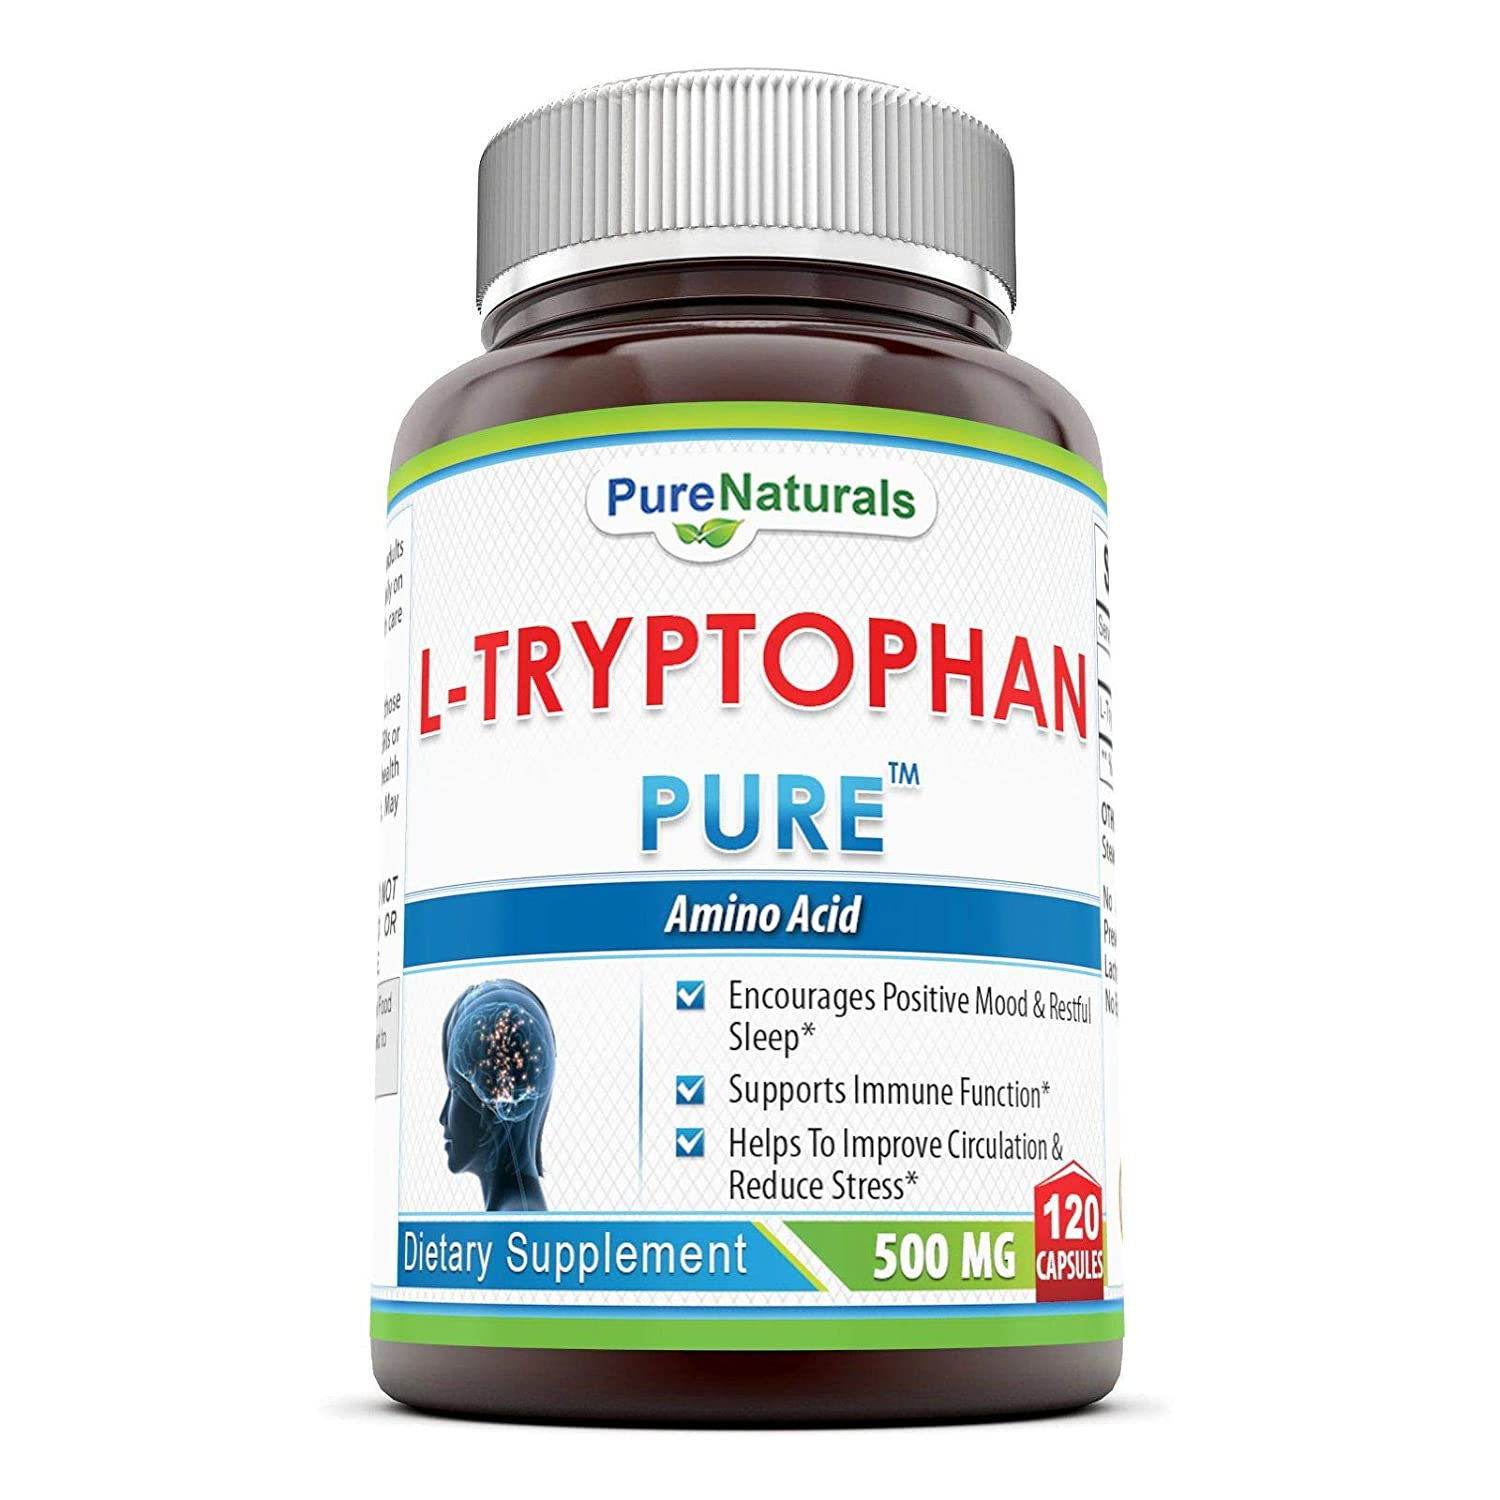 Pure Naturals L-Tryptophan Dietary Supplement, 500 Mg, 120 Capsules: Amazon. es: Salud y cuidado personal